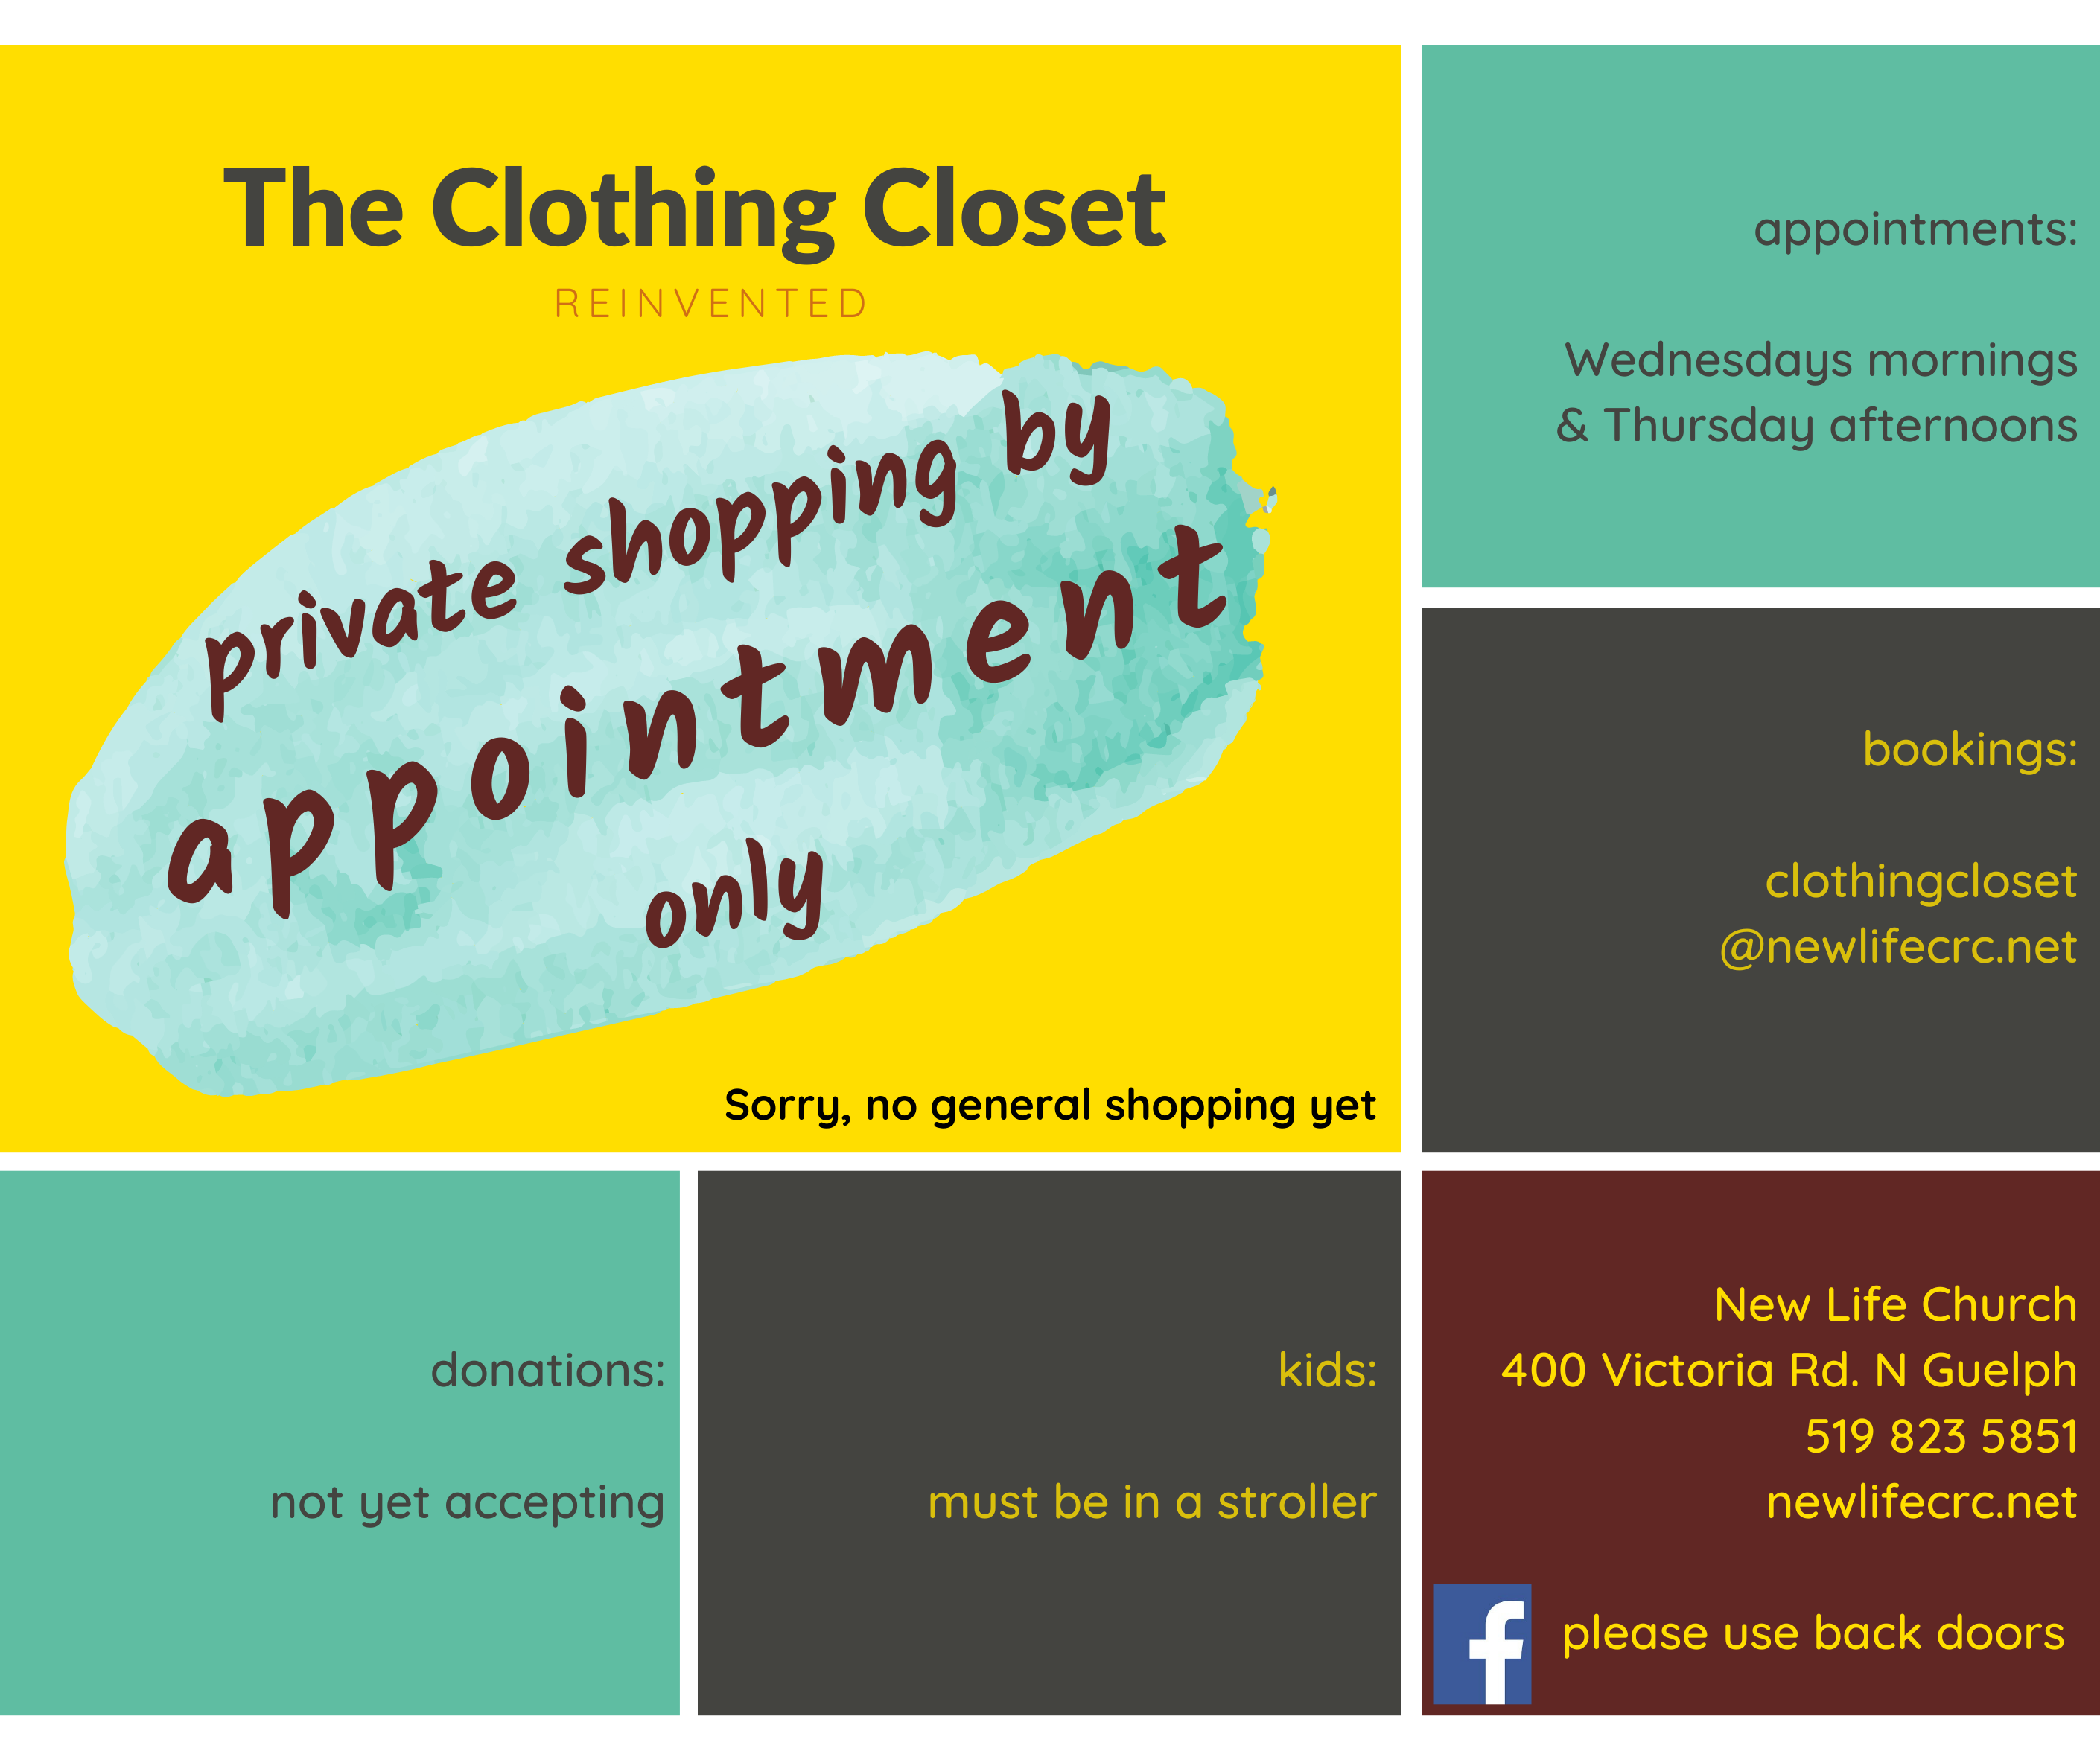 Clothing Closet by appointment fb